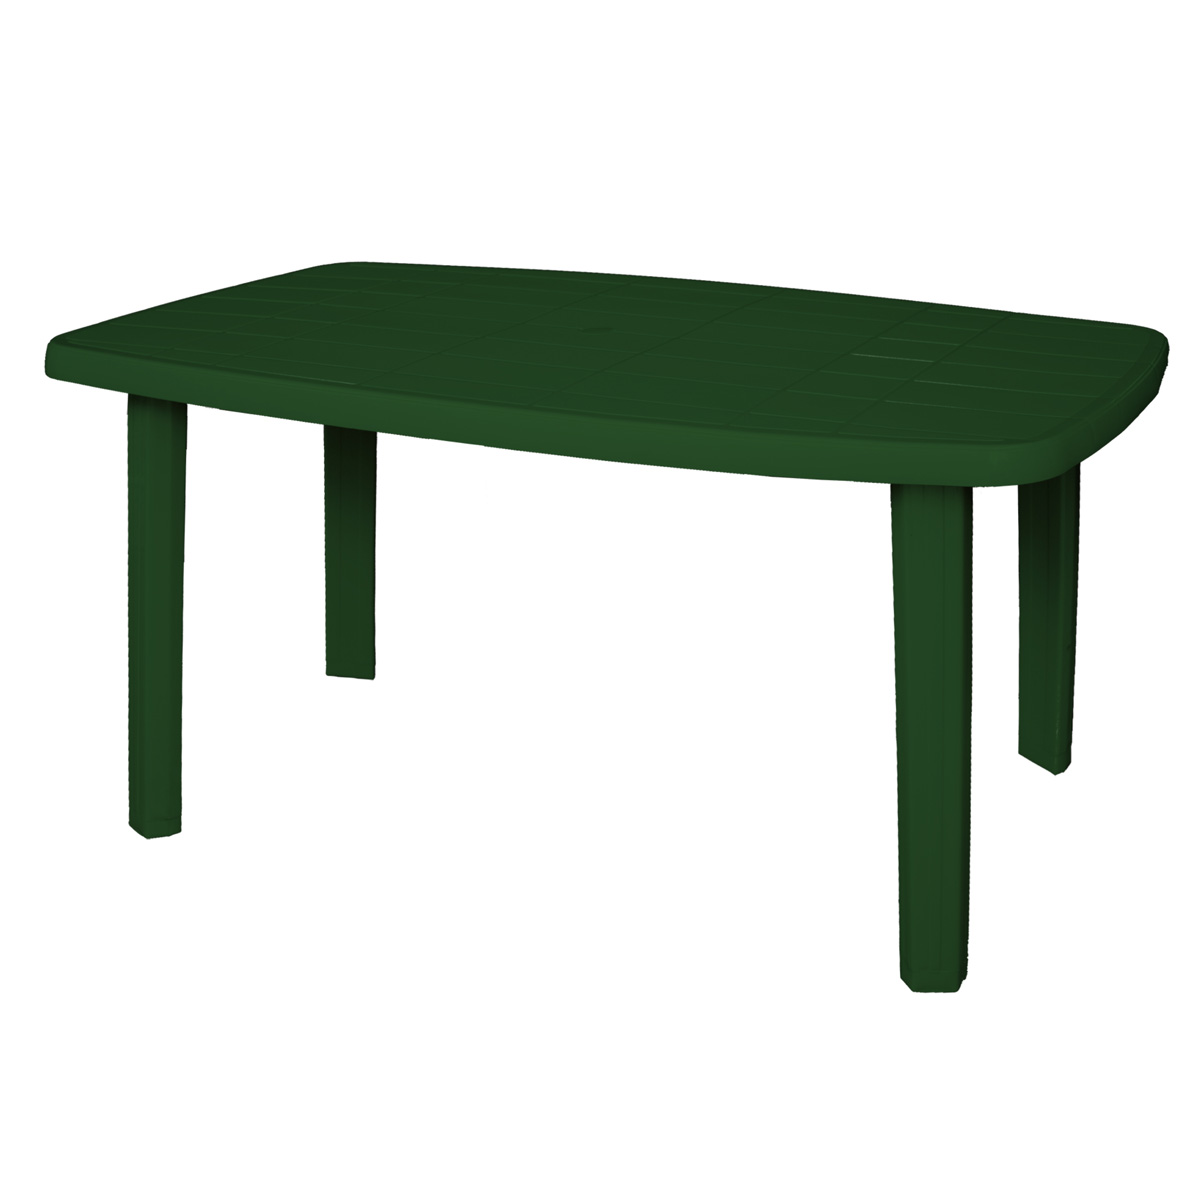 emejing nettoyer table de jardin plastique vert ideas awesome interior home satellite. Black Bedroom Furniture Sets. Home Design Ideas